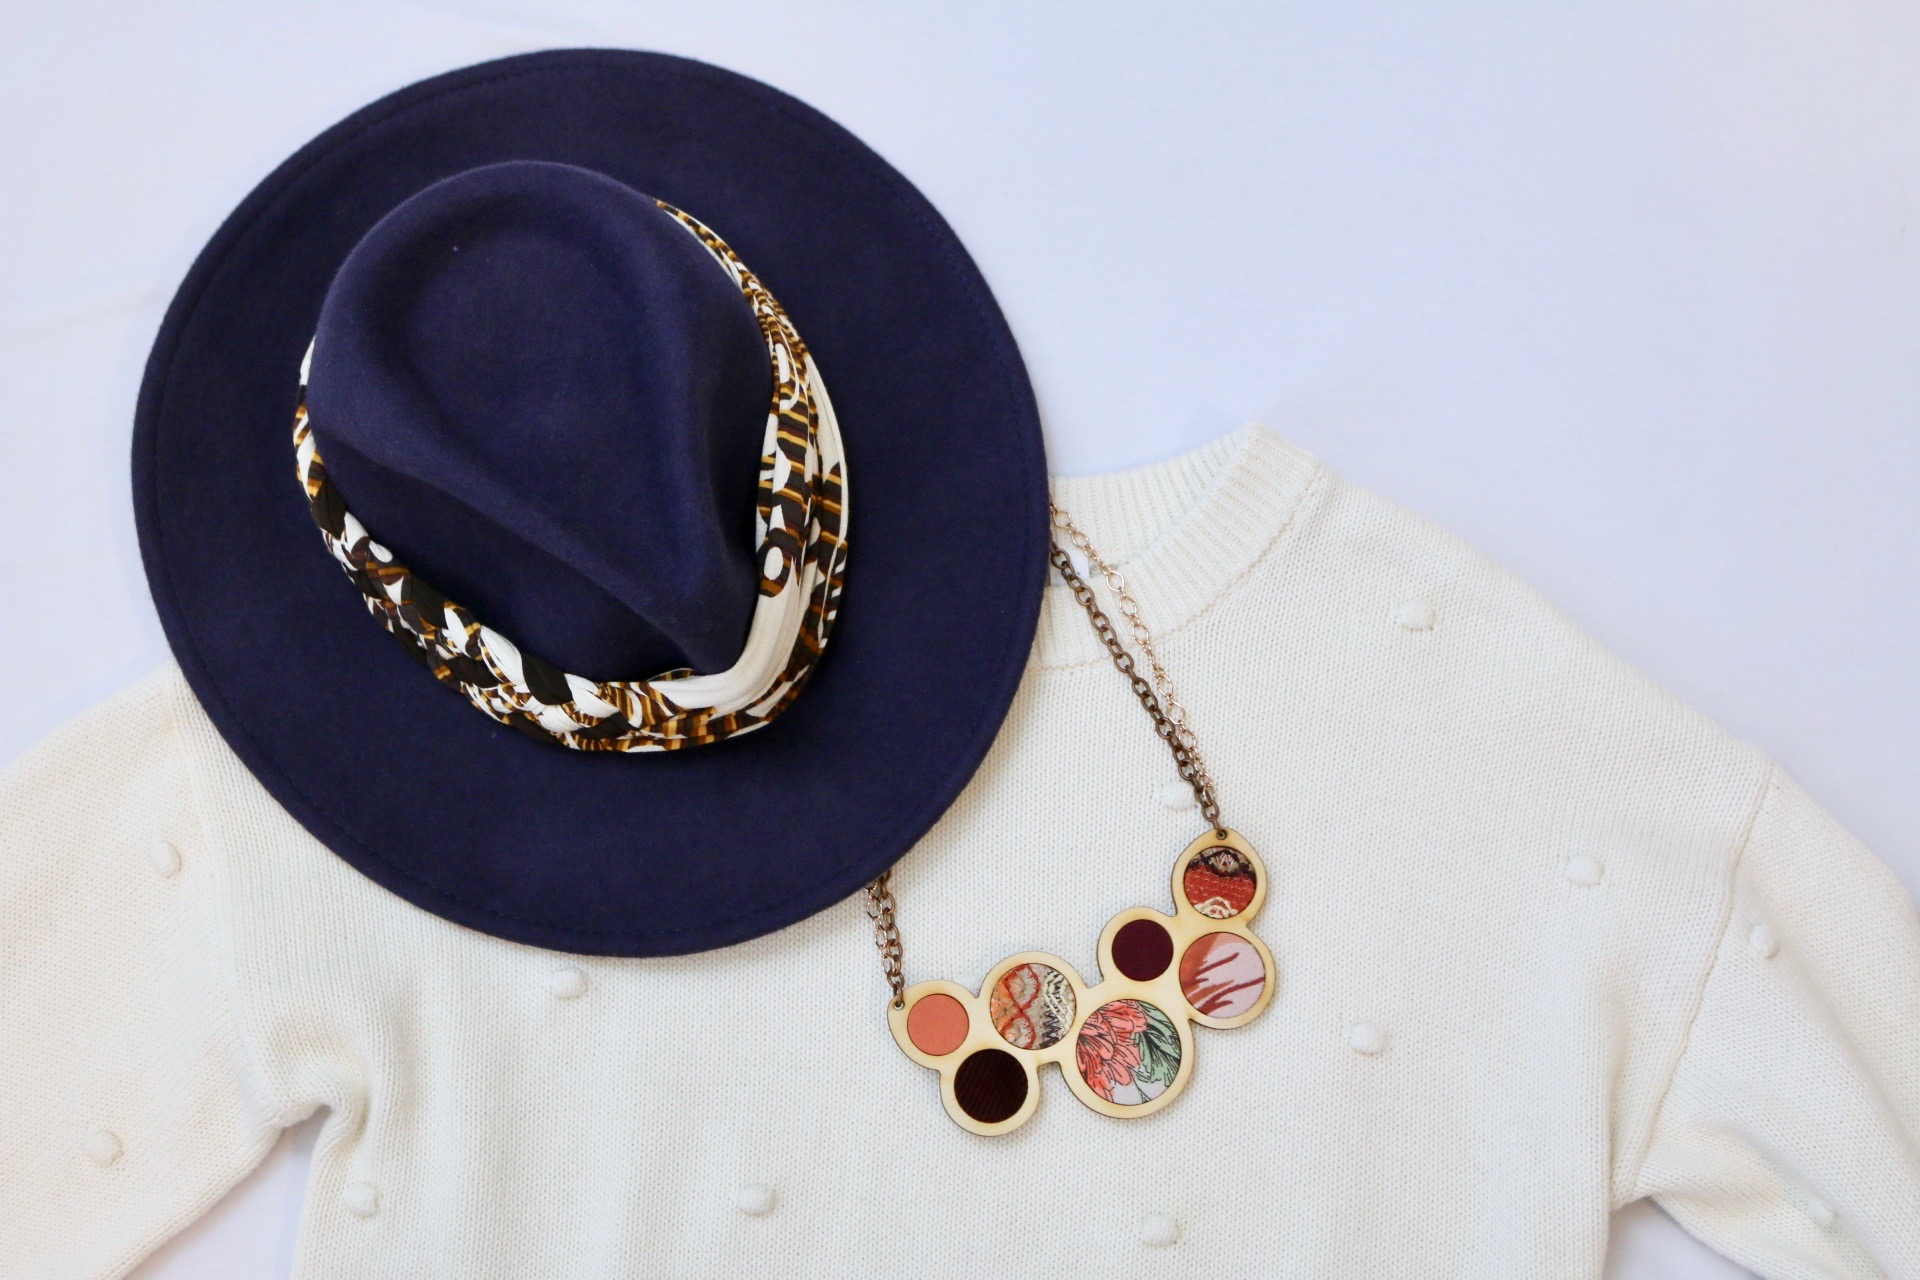 Ivory sweater styled with blue hat with Regenerous Designs Big braided Headband on it. Along with Regenerous Designs Necklace.